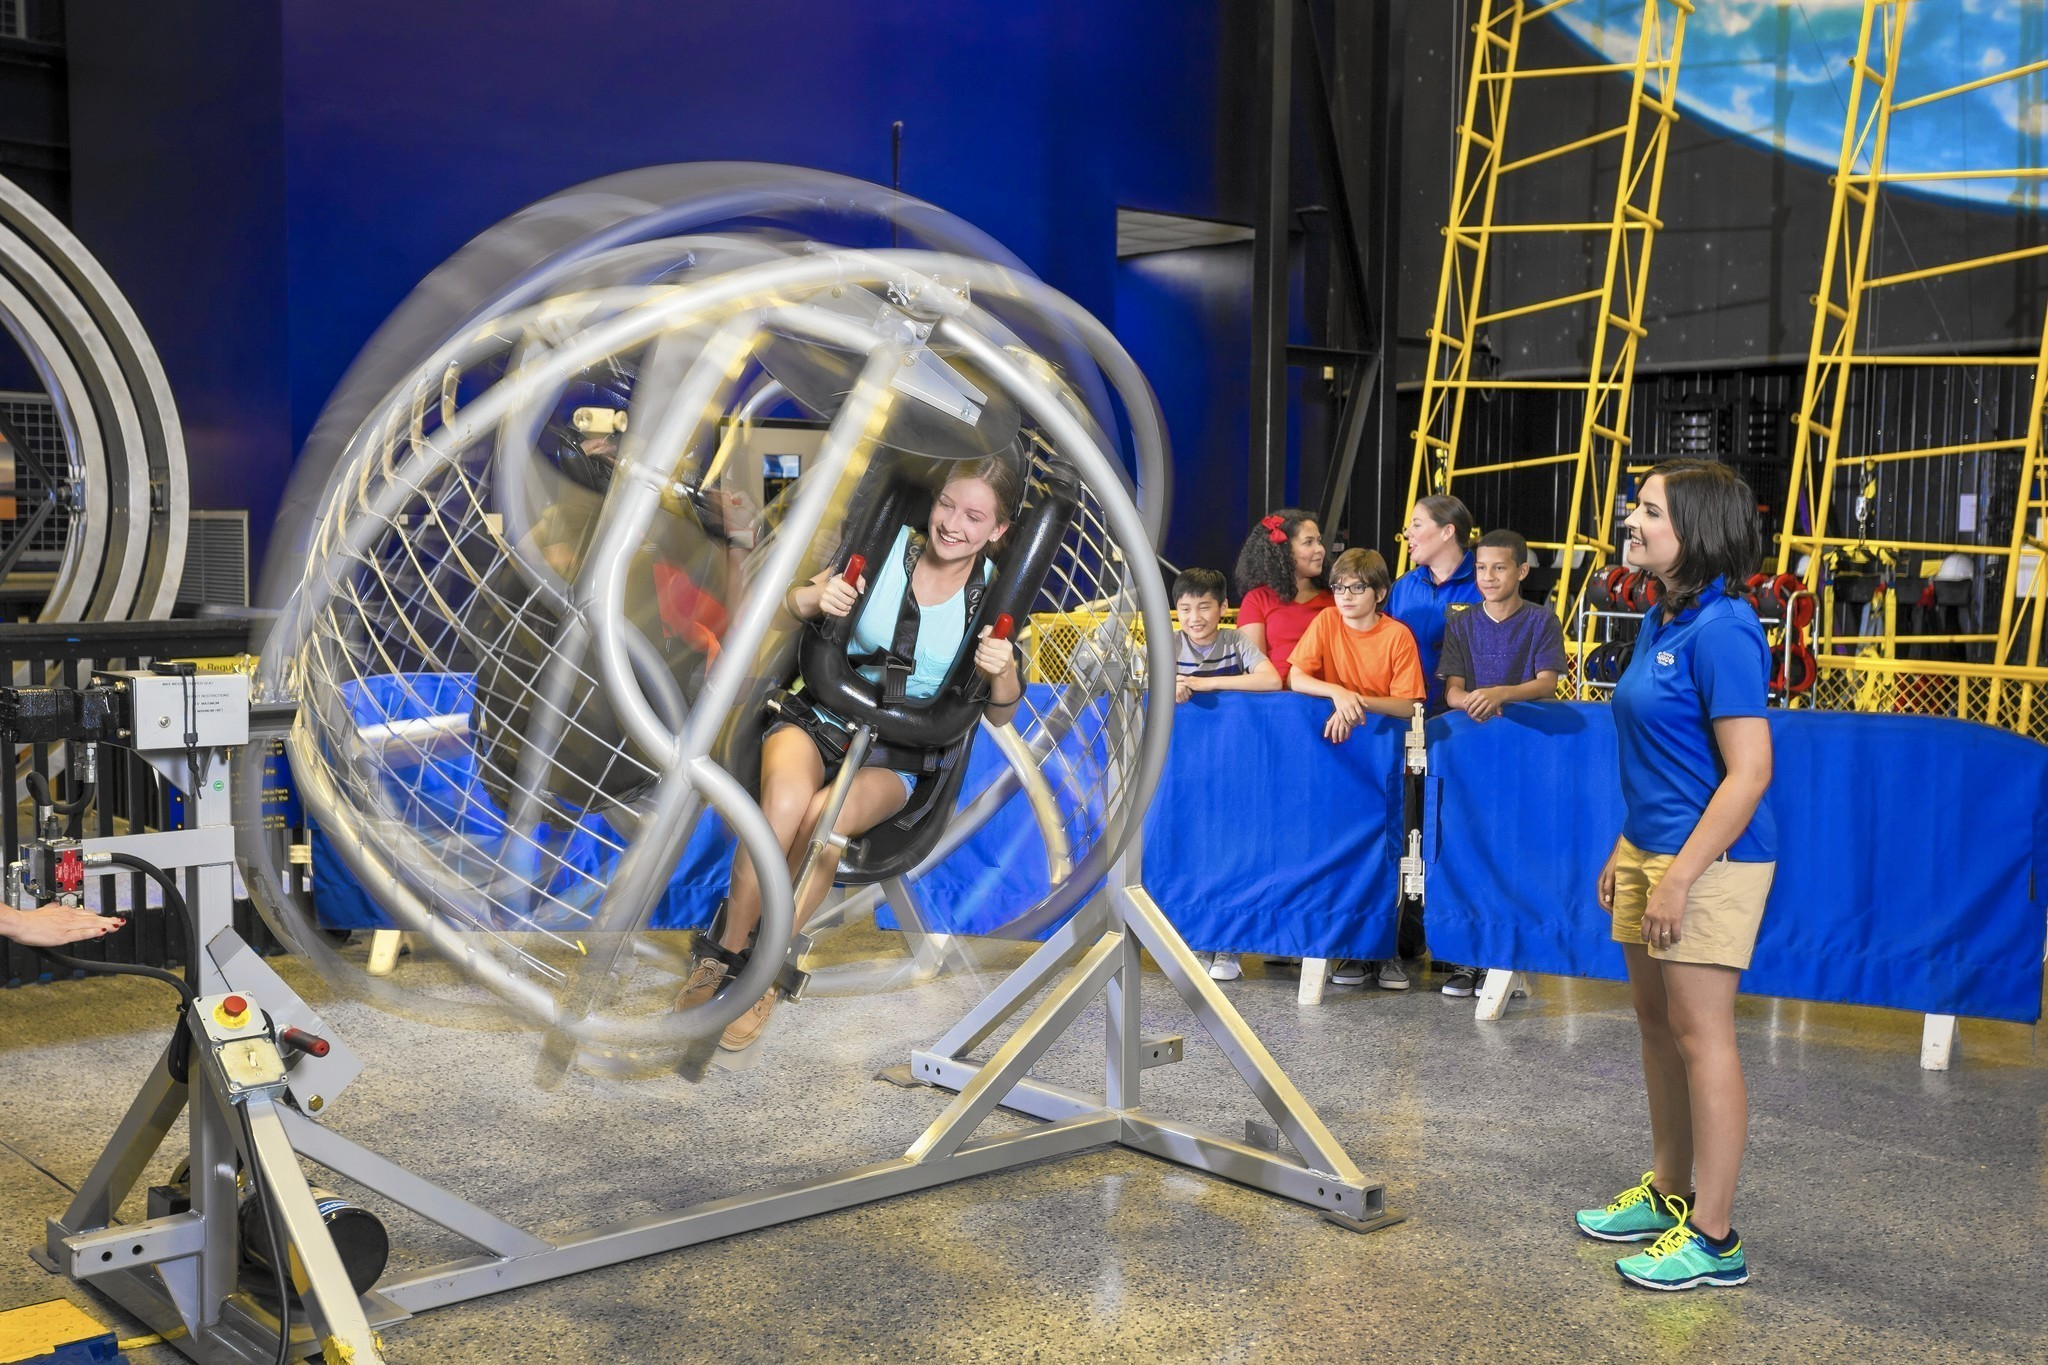 Kids can have a blast at Kennedy Space Center camp ...